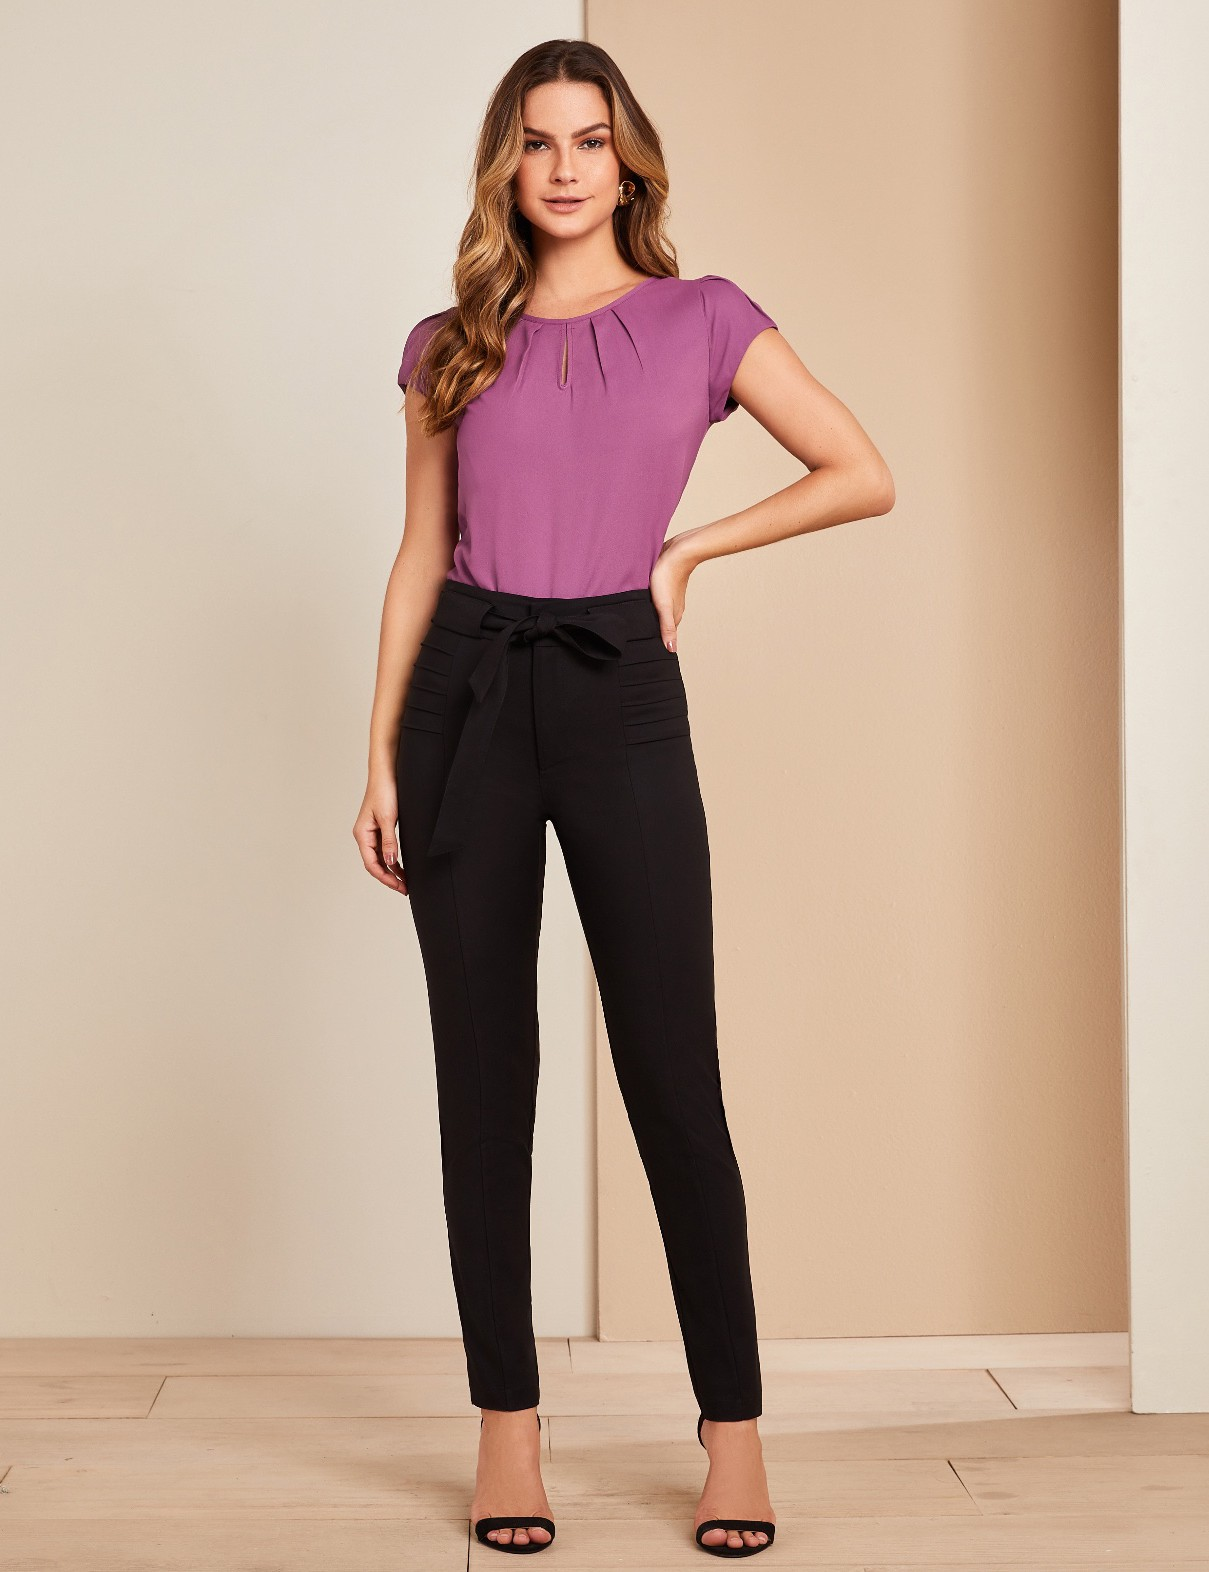 Calca Skinny Nervura Amarracao Unique Chic